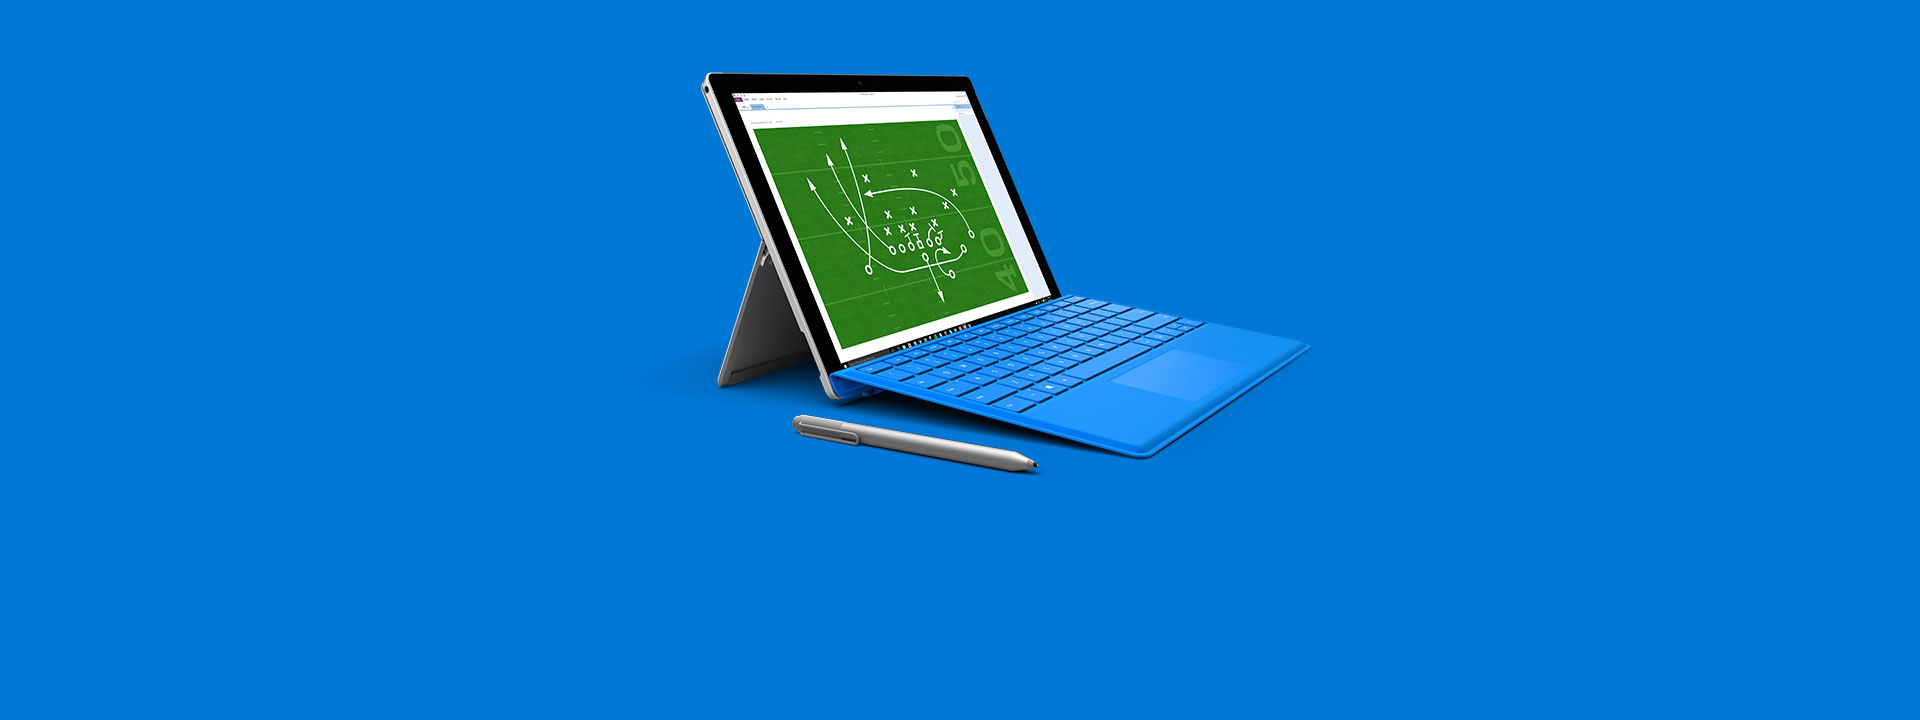 A Surface Pro 4 with the screen showing a diagrammed football play.